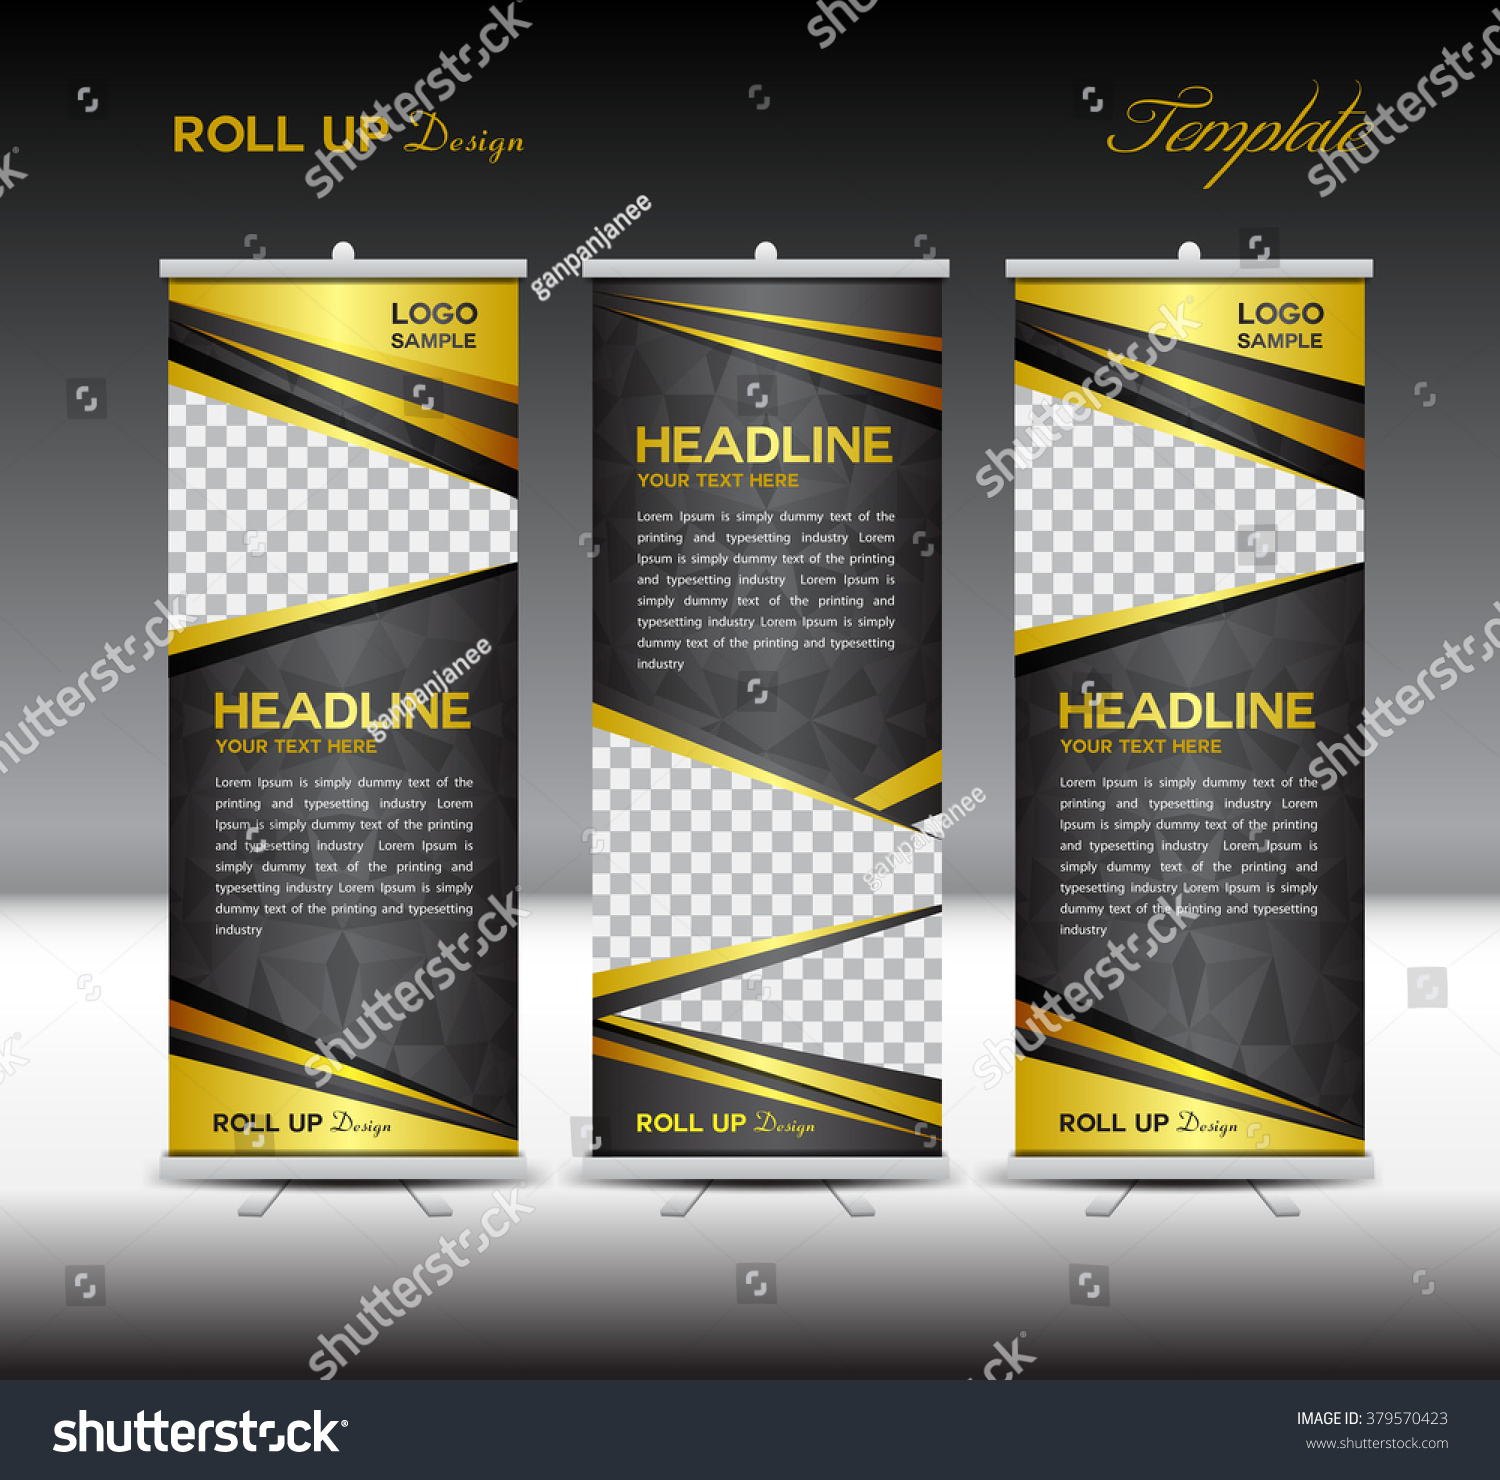 gold black roll banner template vector stock vector 379570423 gold and black roll up banner template vector illustration polygon background stand advertisement